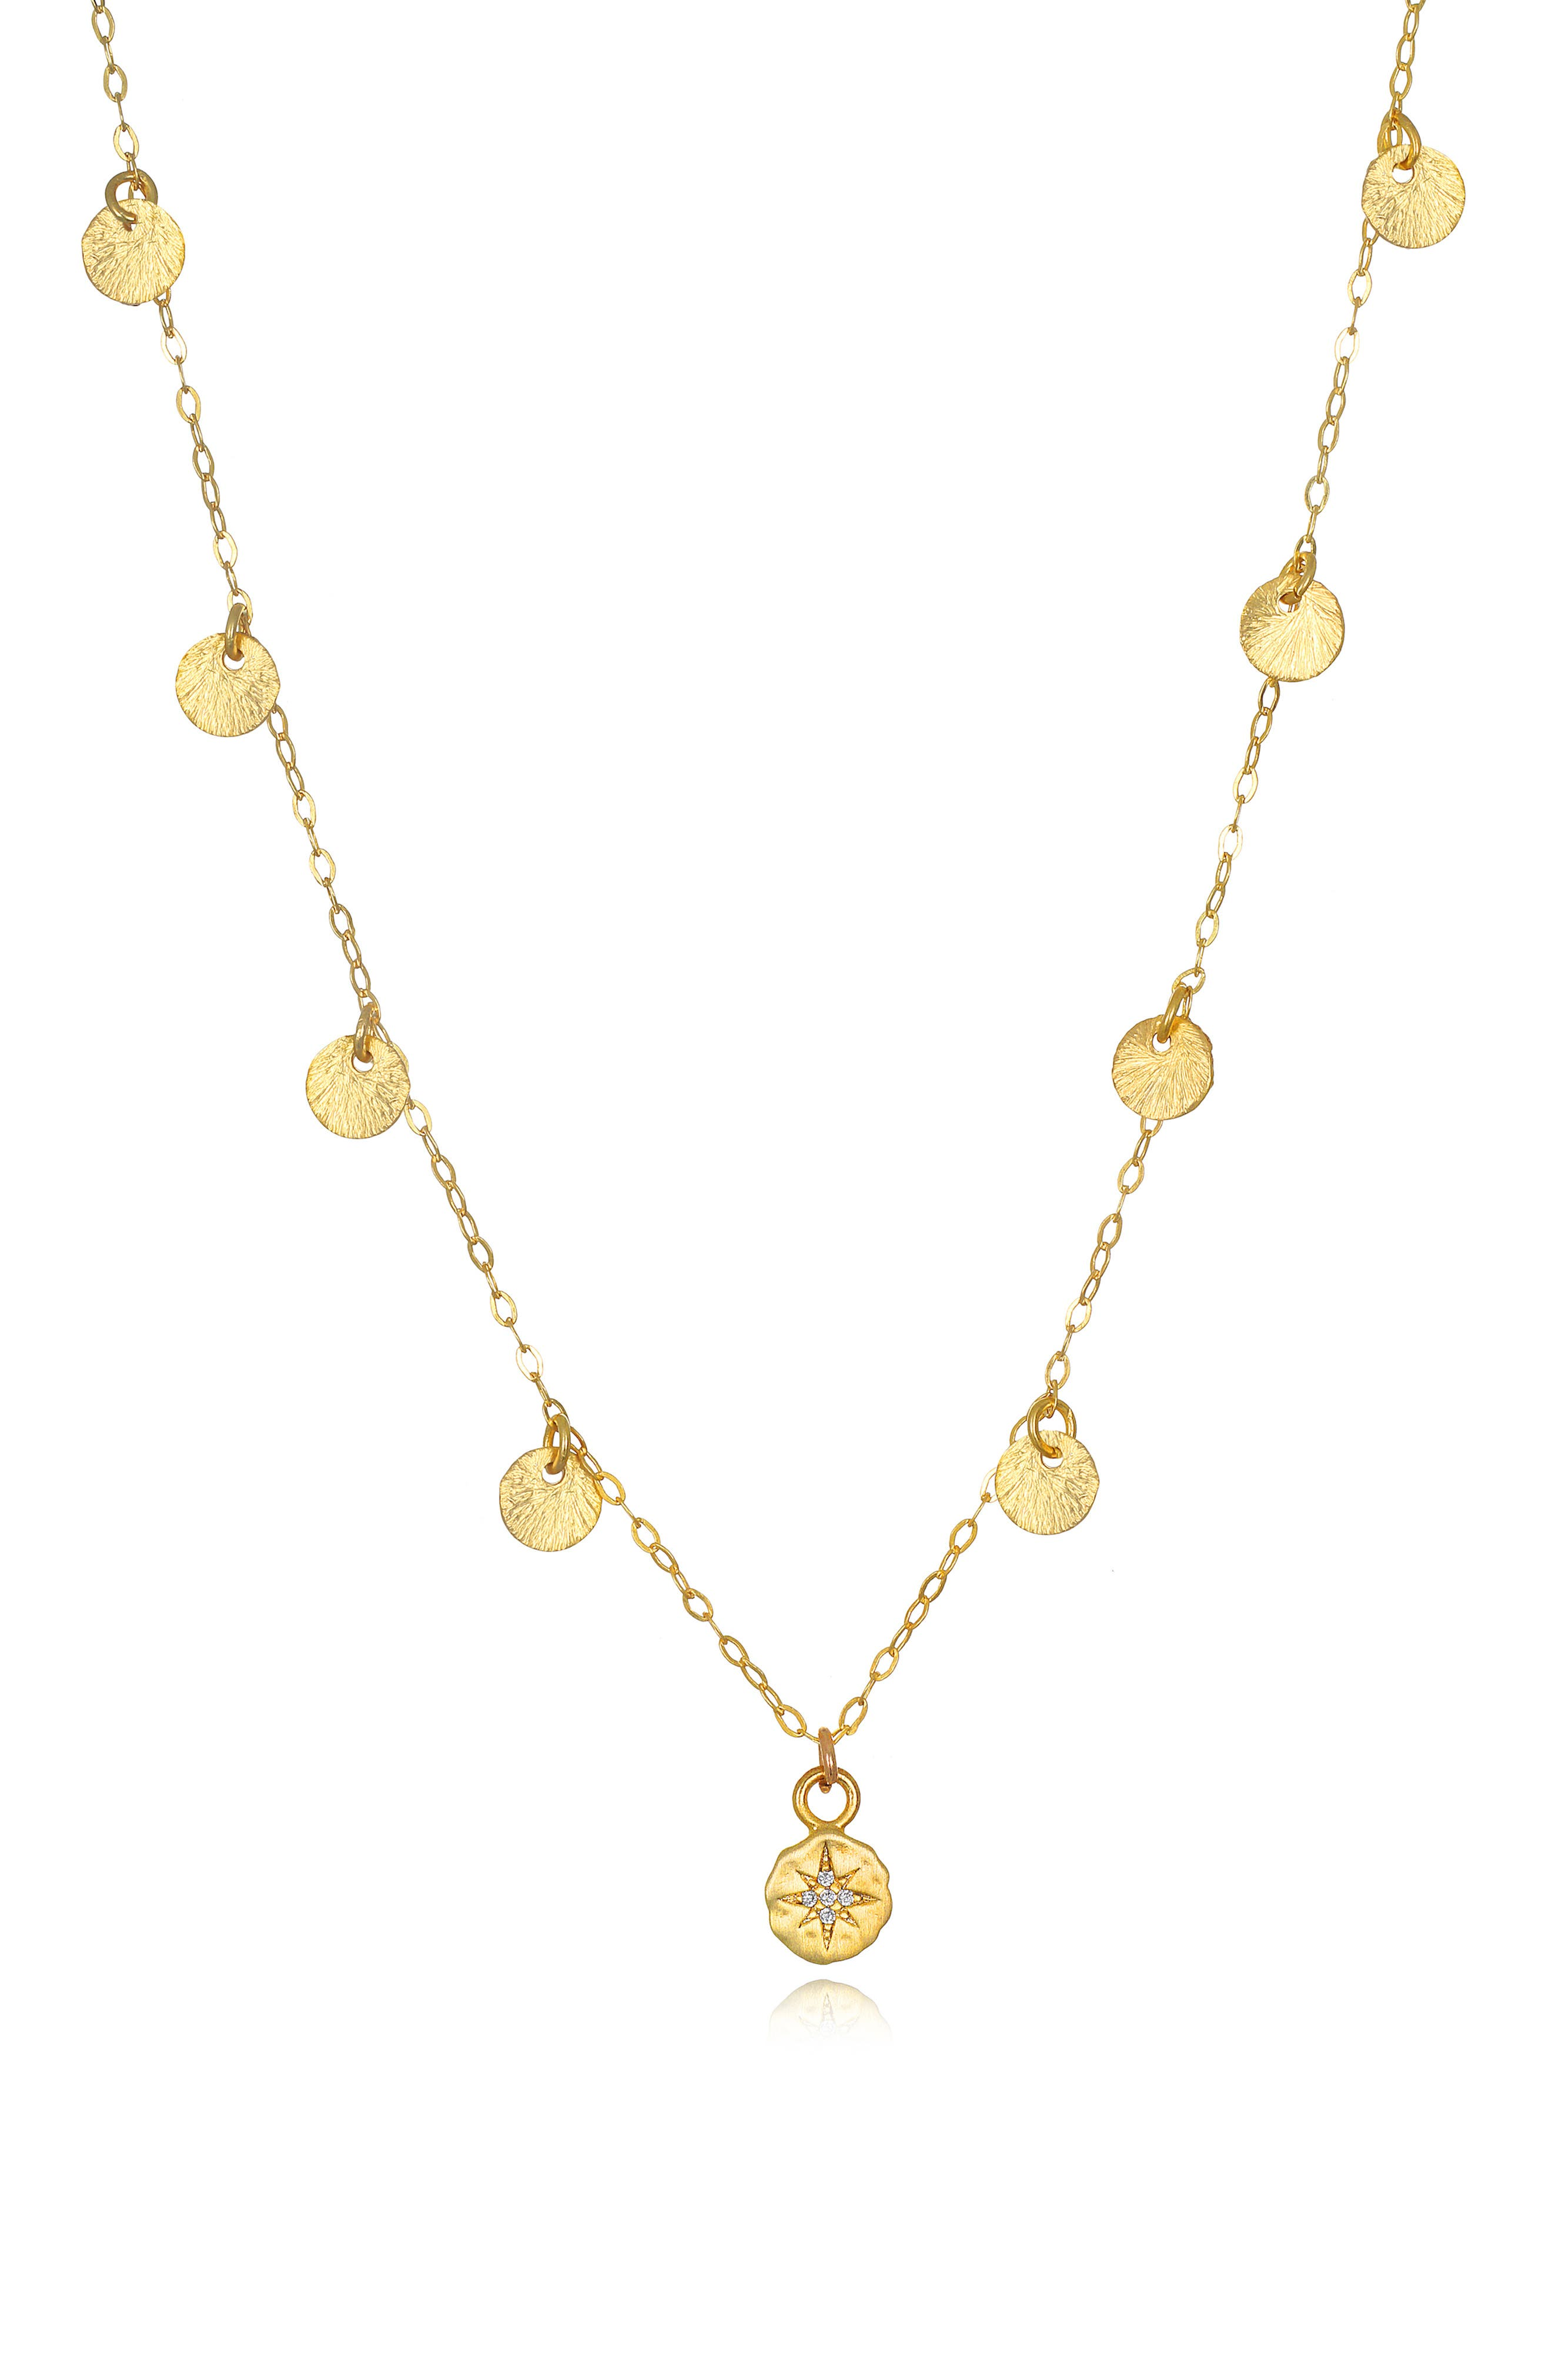 Amelia Rose Catalina Starburst Pendant Necklace in Gold at Nordstrom